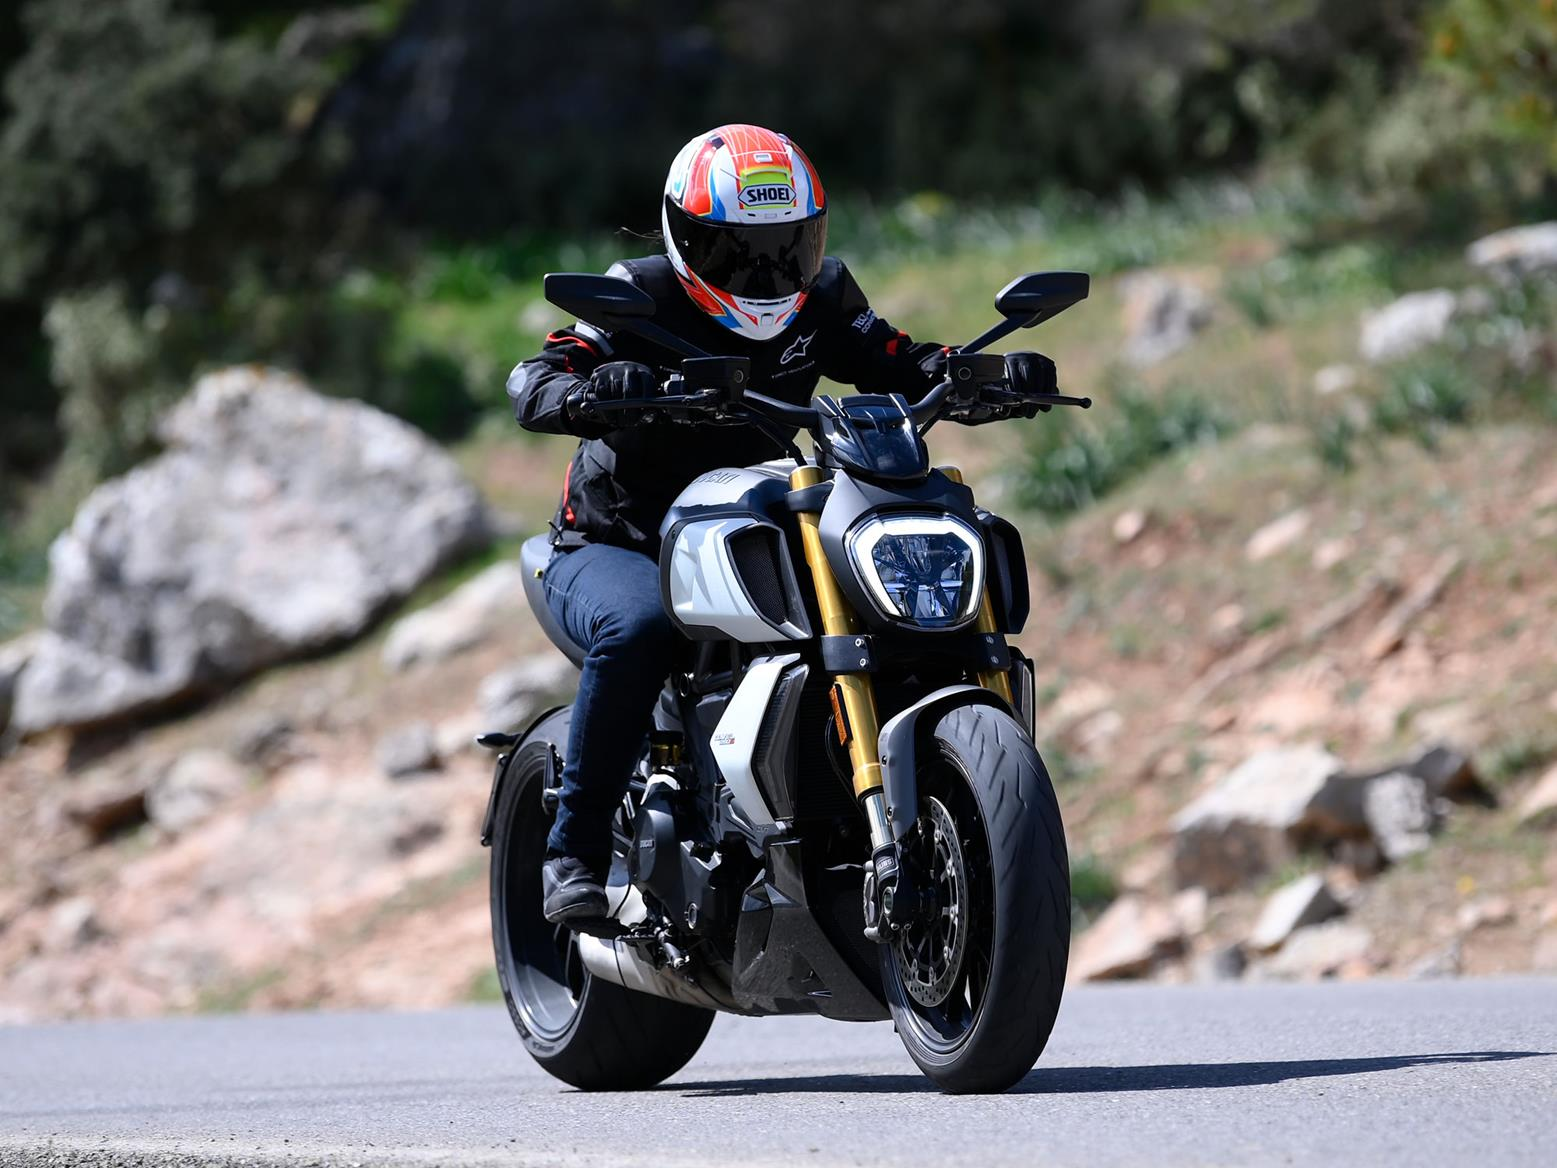 MCN's Emma Franklin testing the 2019 Ducati Diavel